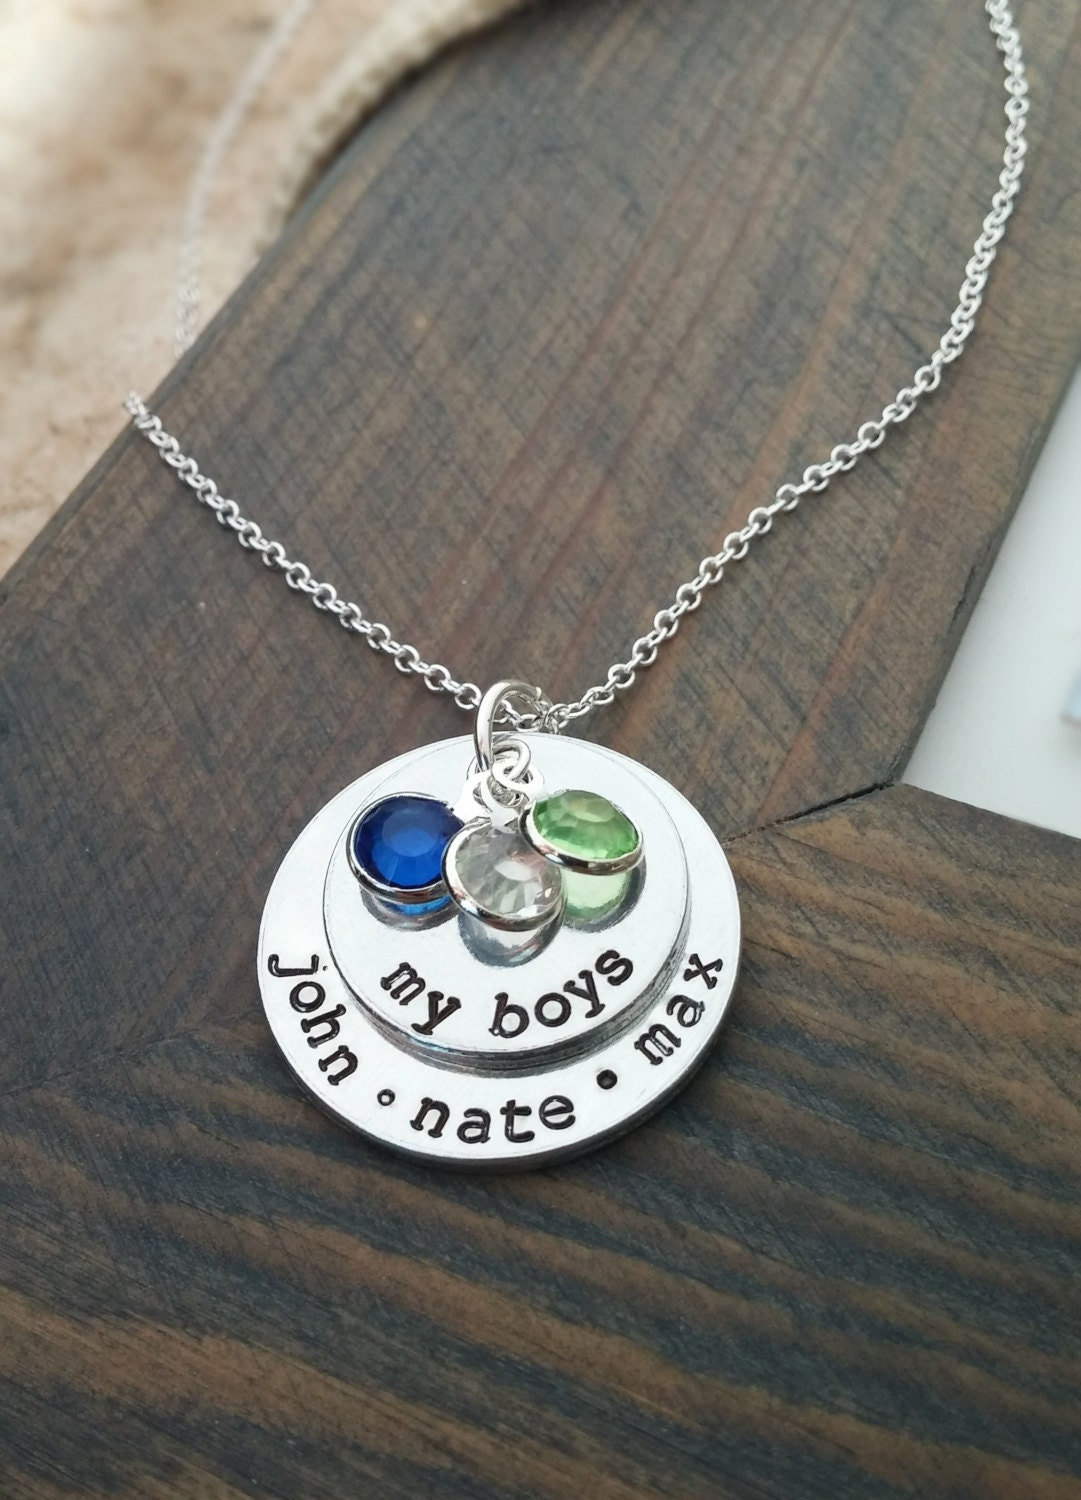 mom of boys necklace personalized family necklace with kids. Black Bedroom Furniture Sets. Home Design Ideas